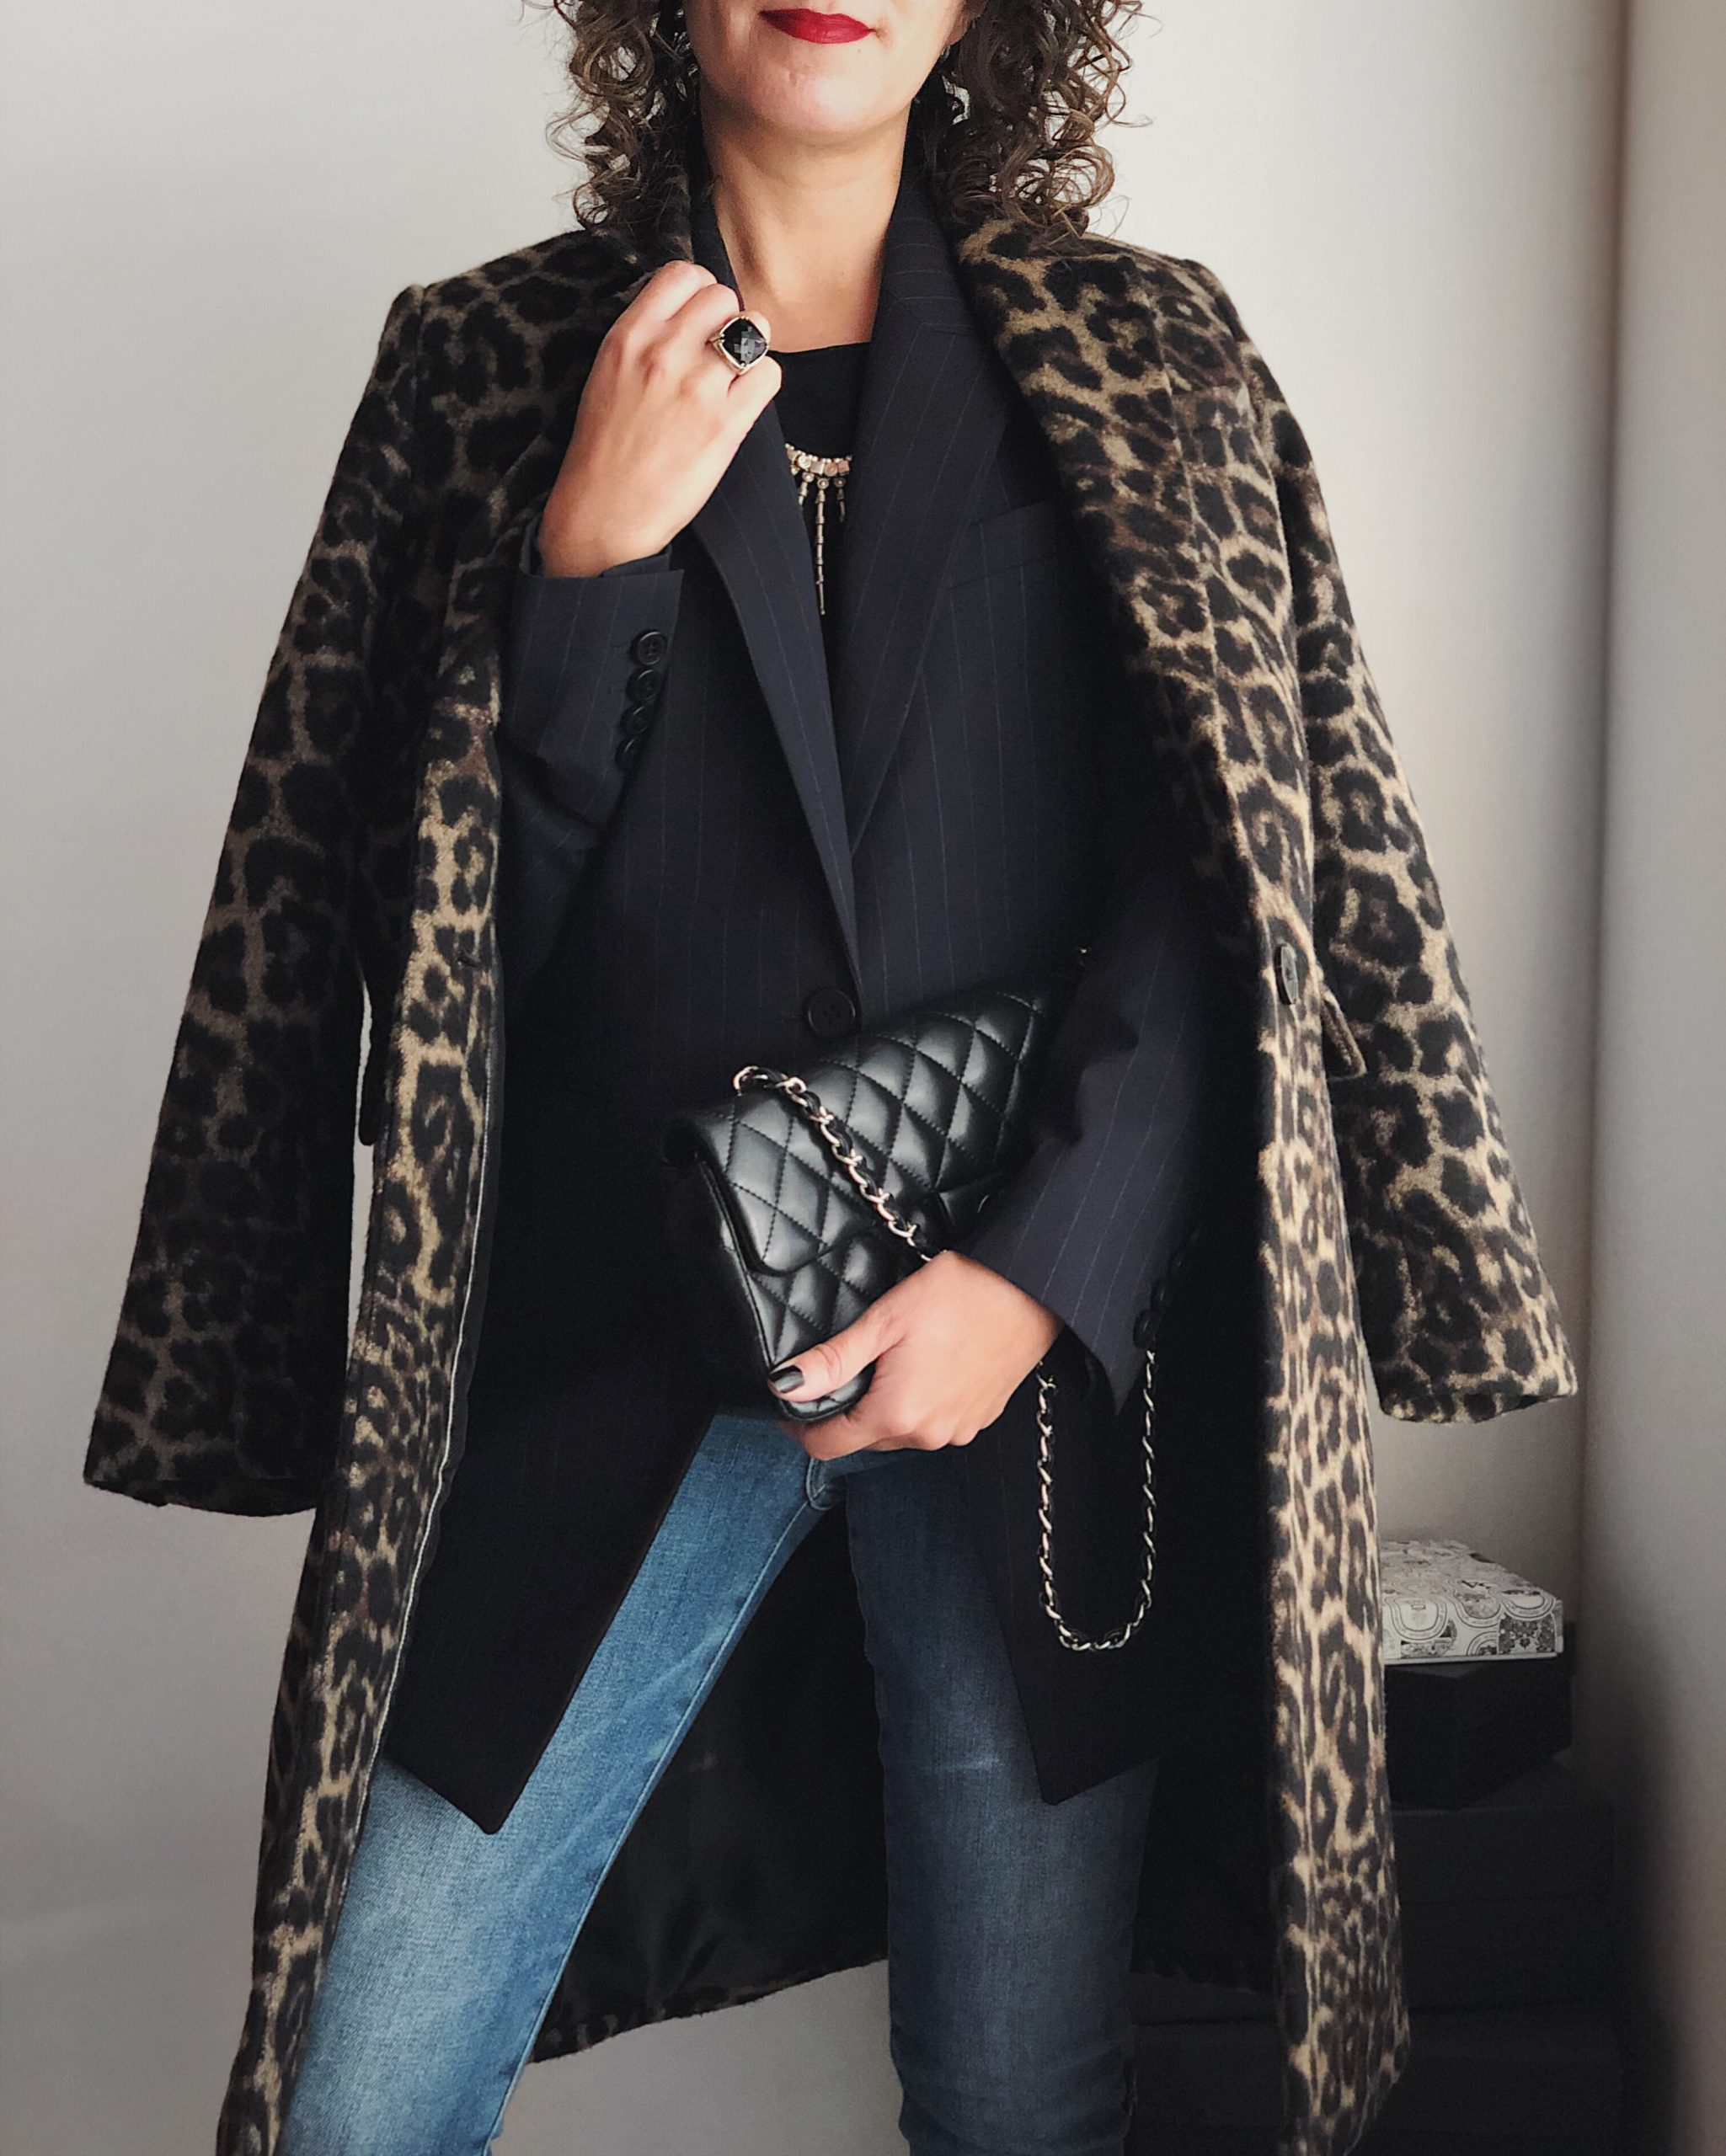 Leopard coat with pinstripe blazer outfit idea for fall